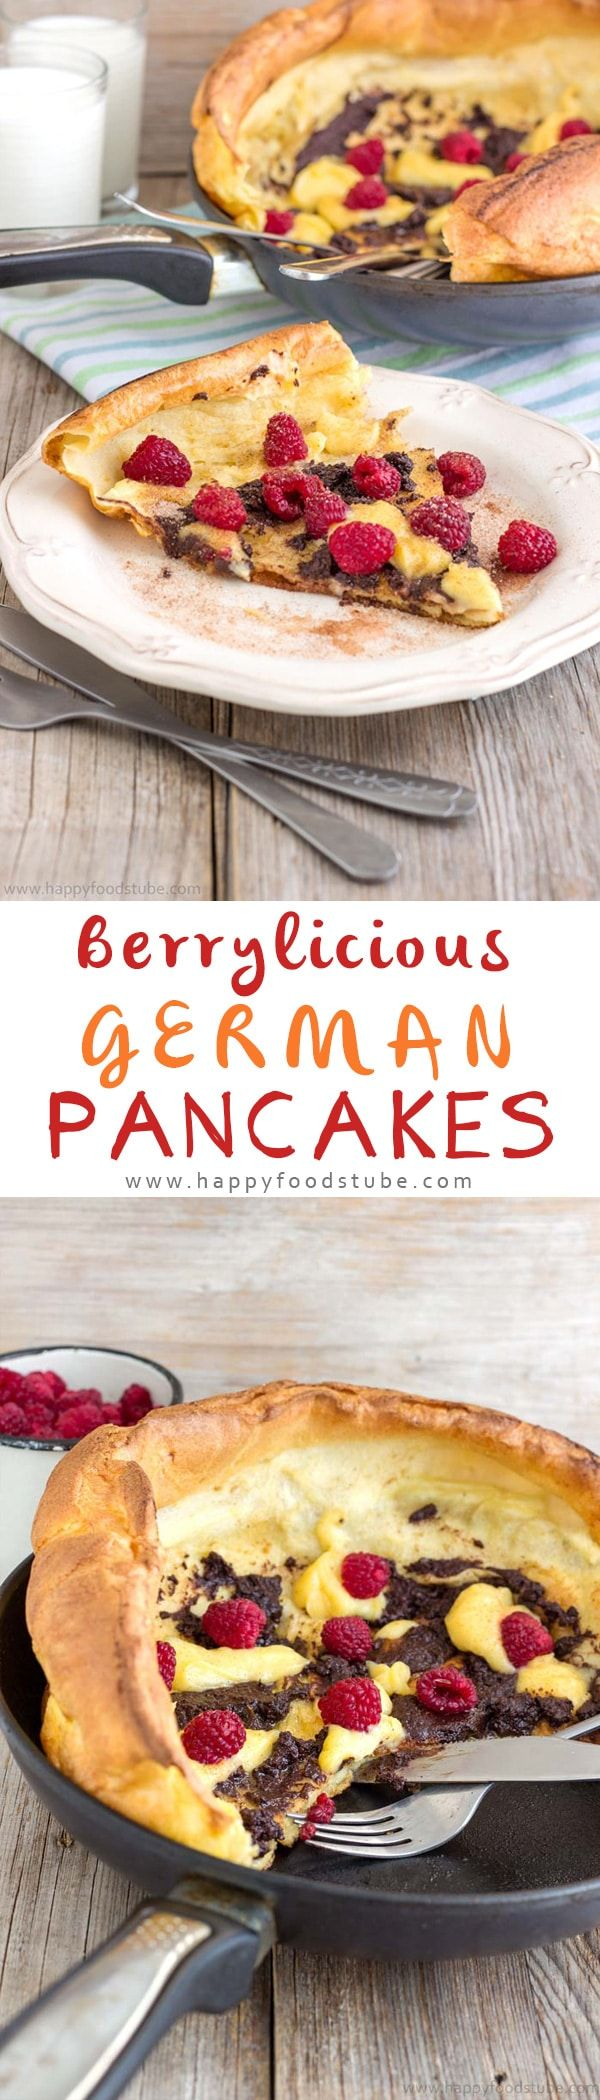 German Pancakes (Dutch Baby Pancakes) are the best pancakes you can get! Buttery, oven baked pancakes topped with raspberries, lemon curd & melted chocolate! | happyfoodstube.com